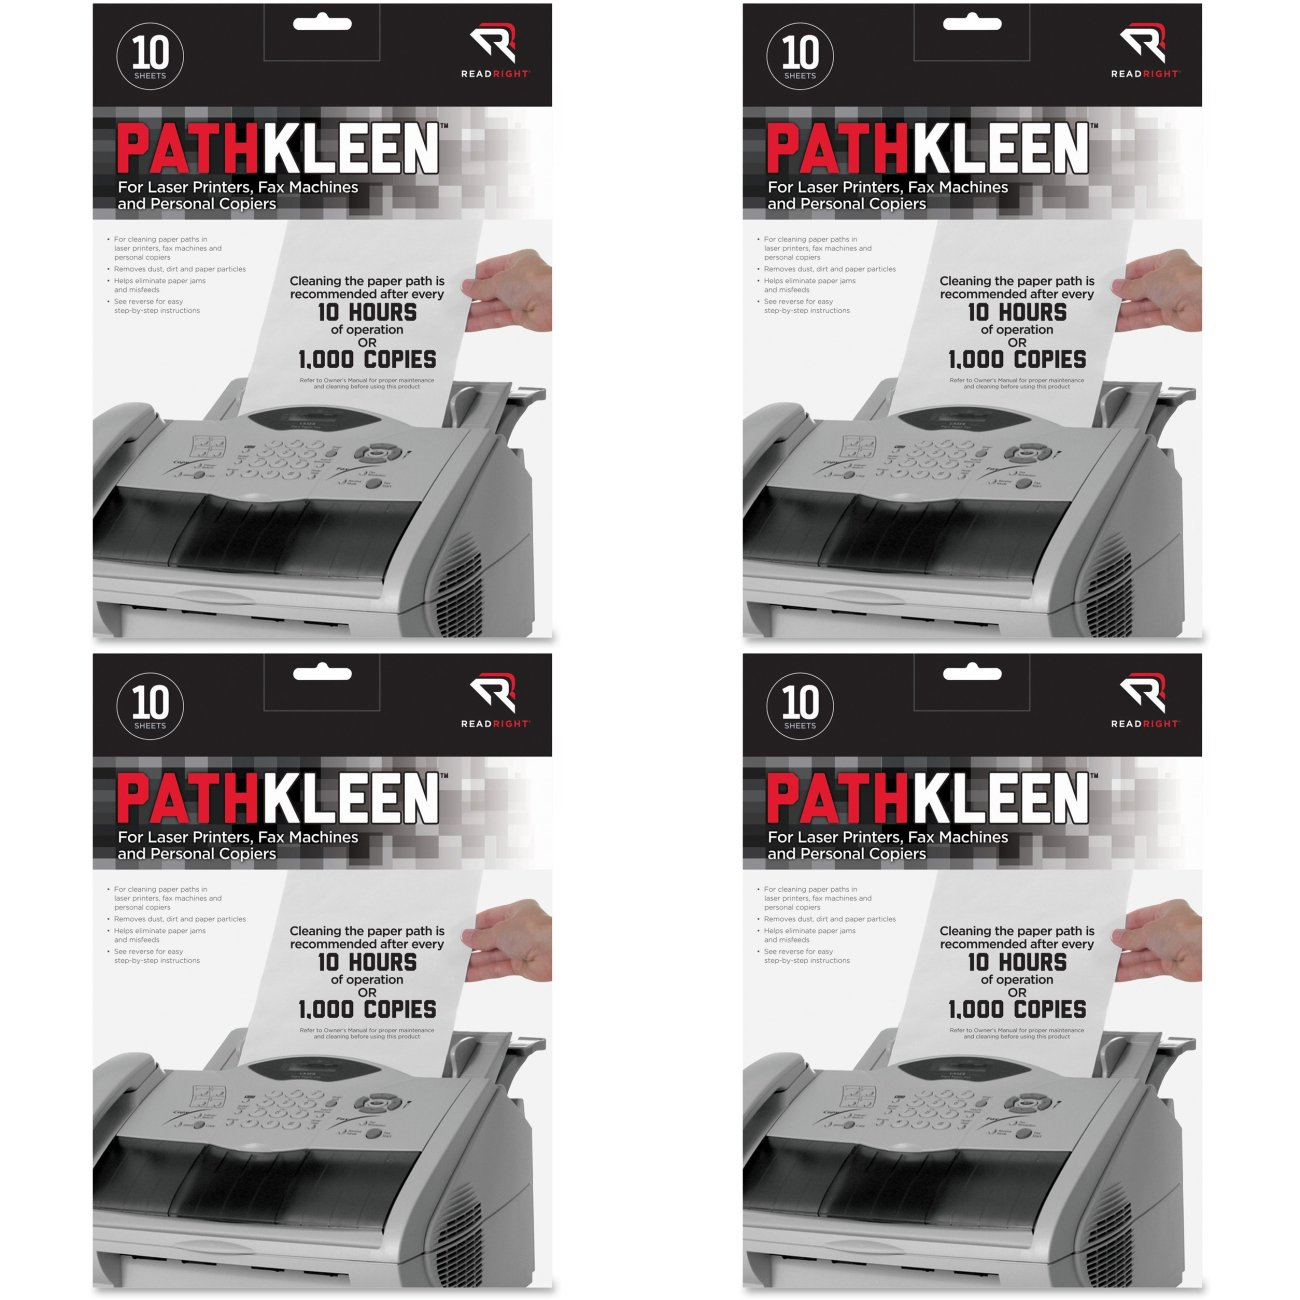 Read Right PathKleen Laser Printer Cleaning Sheets, 8.5 x 11 Inches Sheets, 10 Sheets per Package (RR1237), 4 Packs